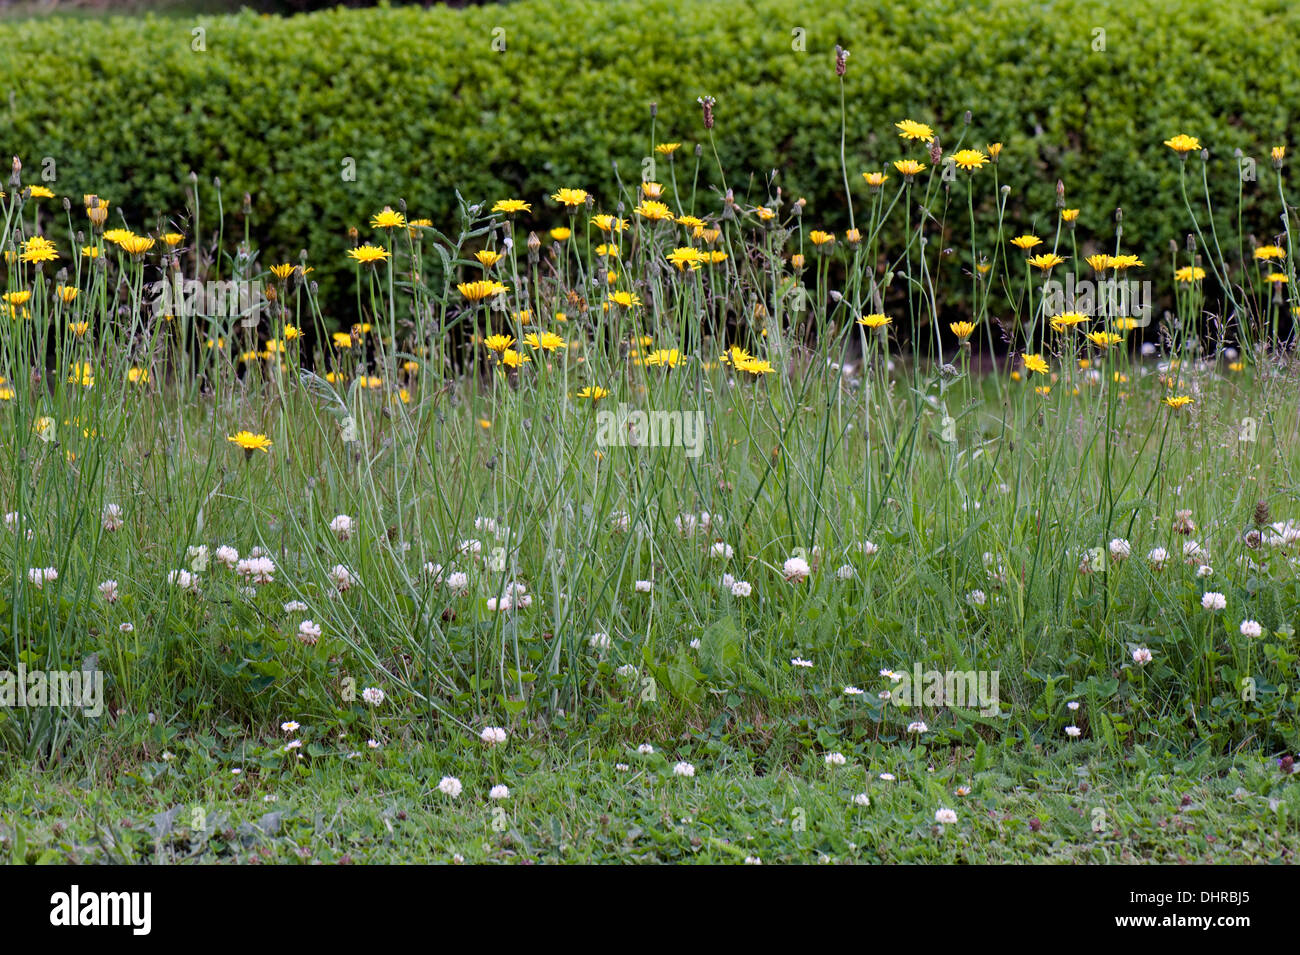 Wild garden flowers to attract invertebrates and encourage natural biological control - Stock Image